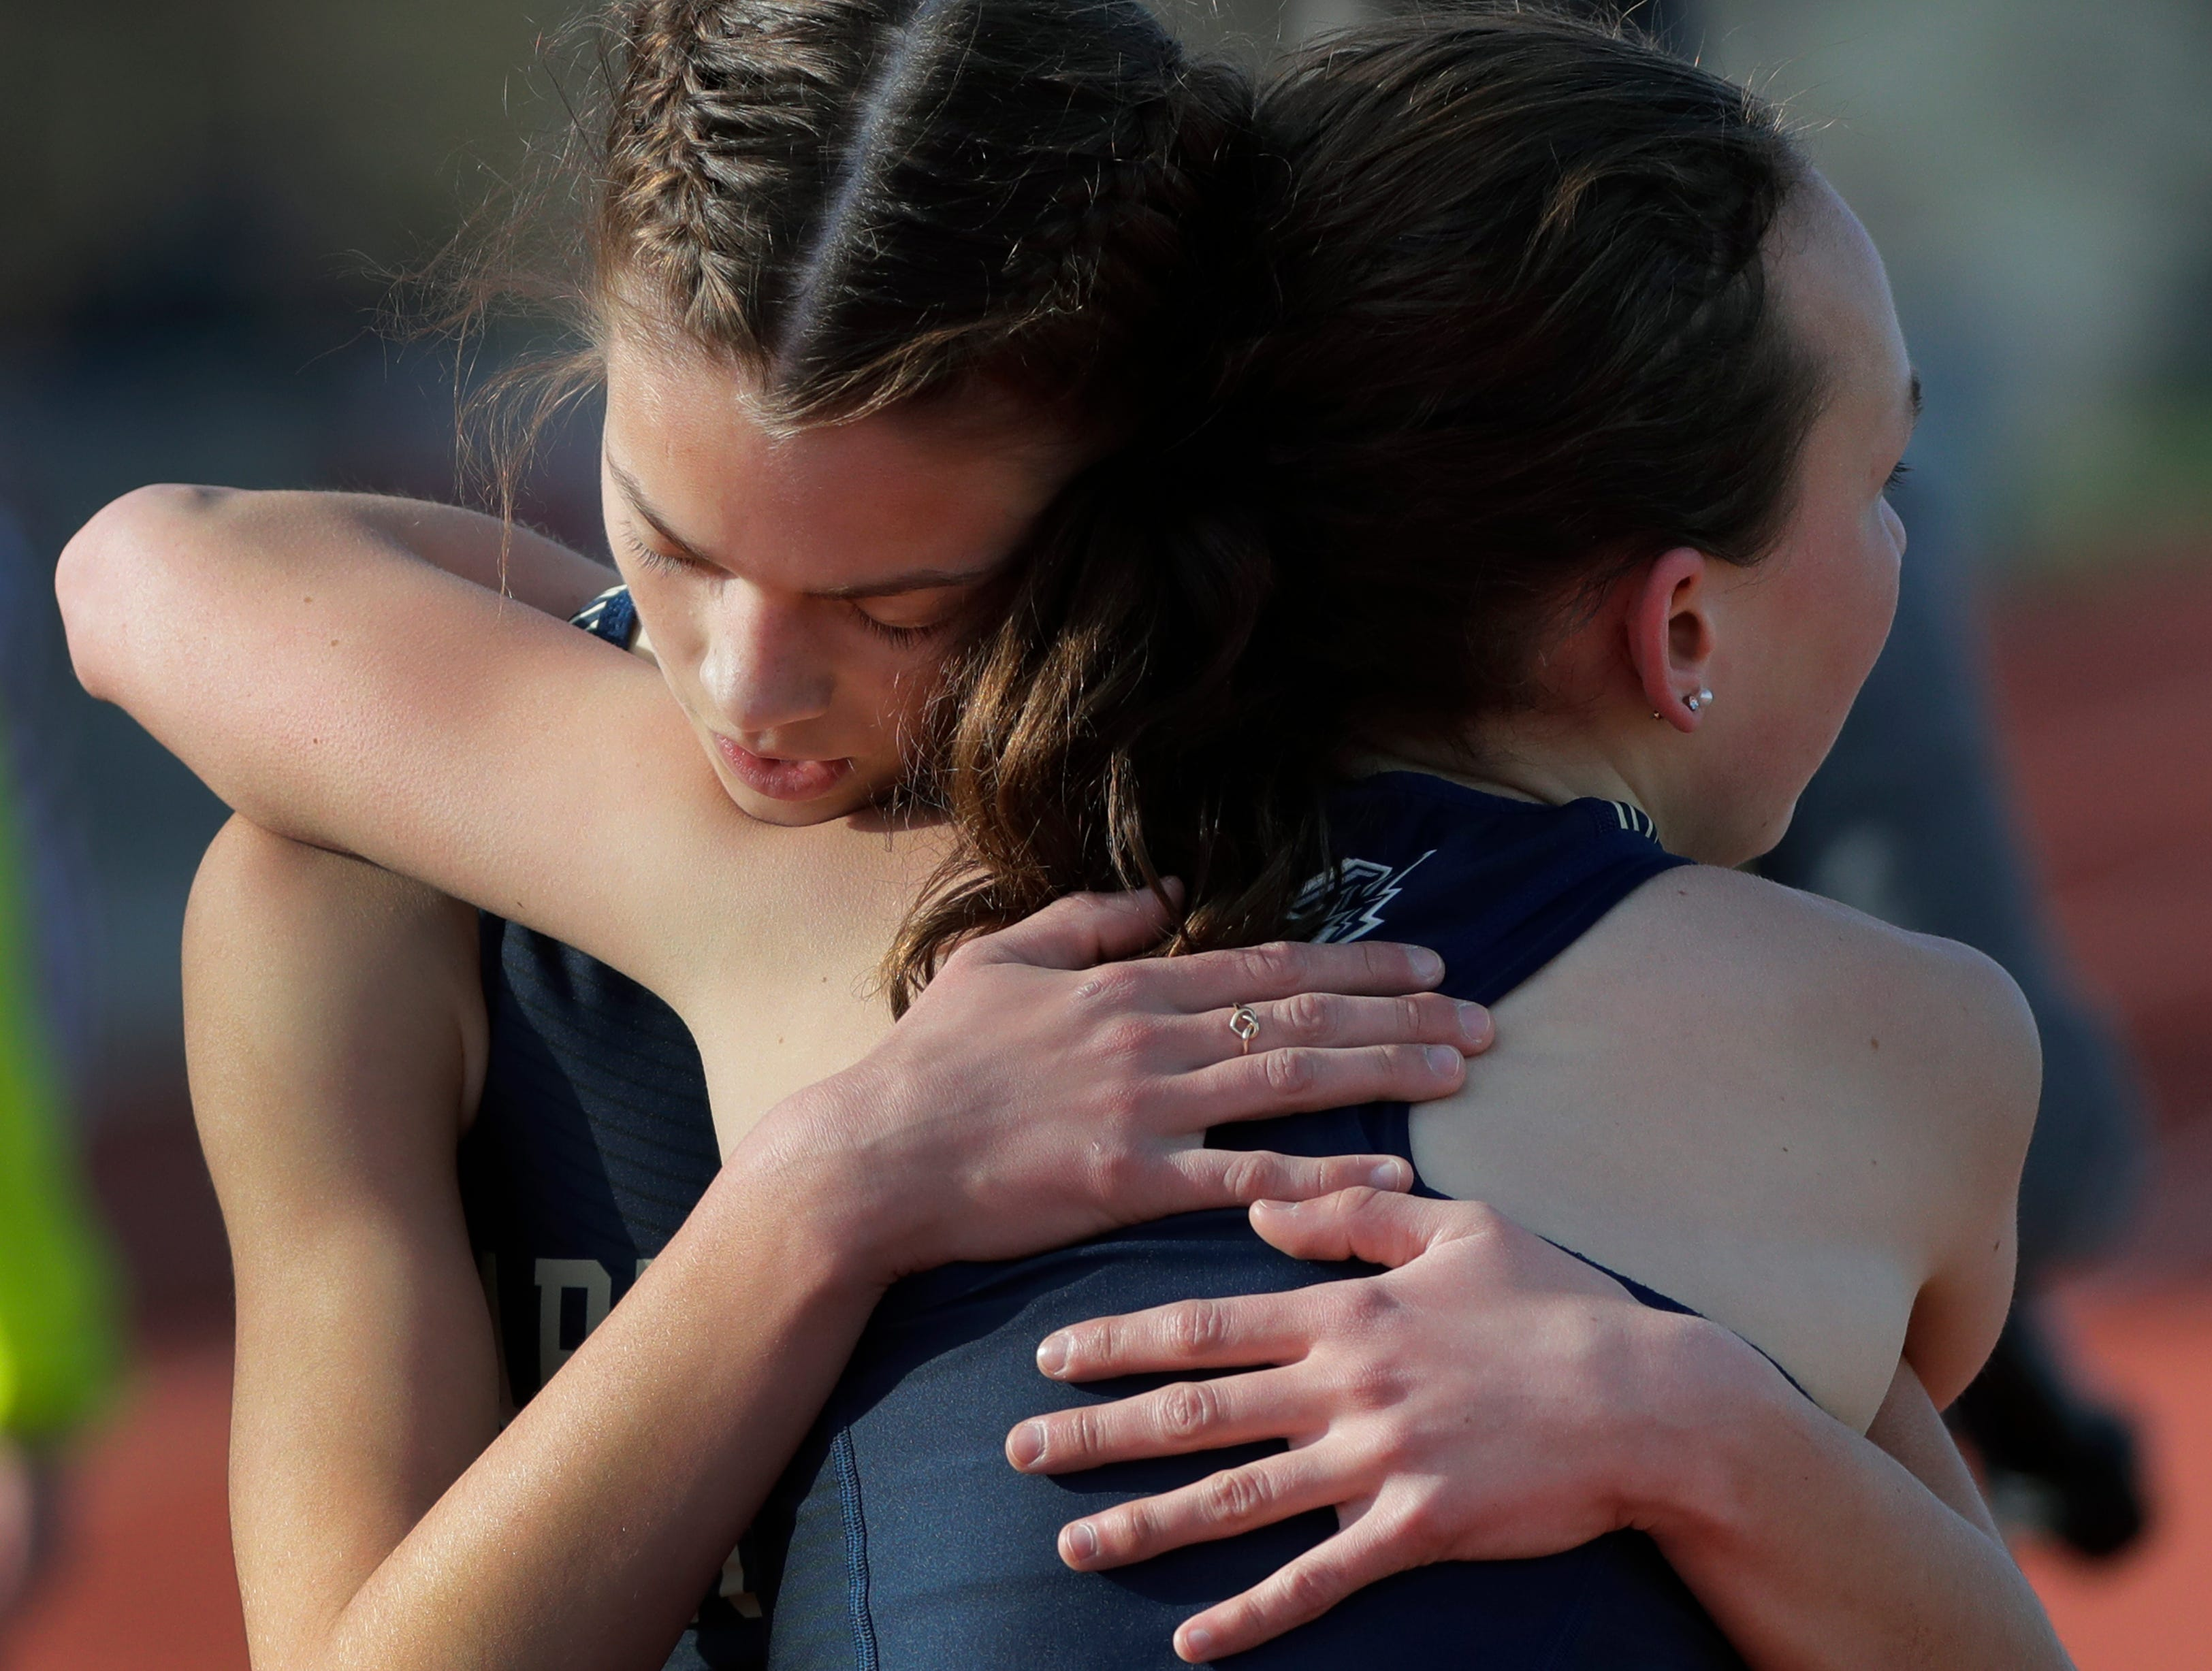 Appleton North High School's Annessa Ihde, left, gets a hug from teammate Anika Nettekoven after taking first place in the 1600-meter run during the Neenah co-ed invitational track and field meet Friday, April 26, 2019, at Neenah High School in Neenah, Wis. 